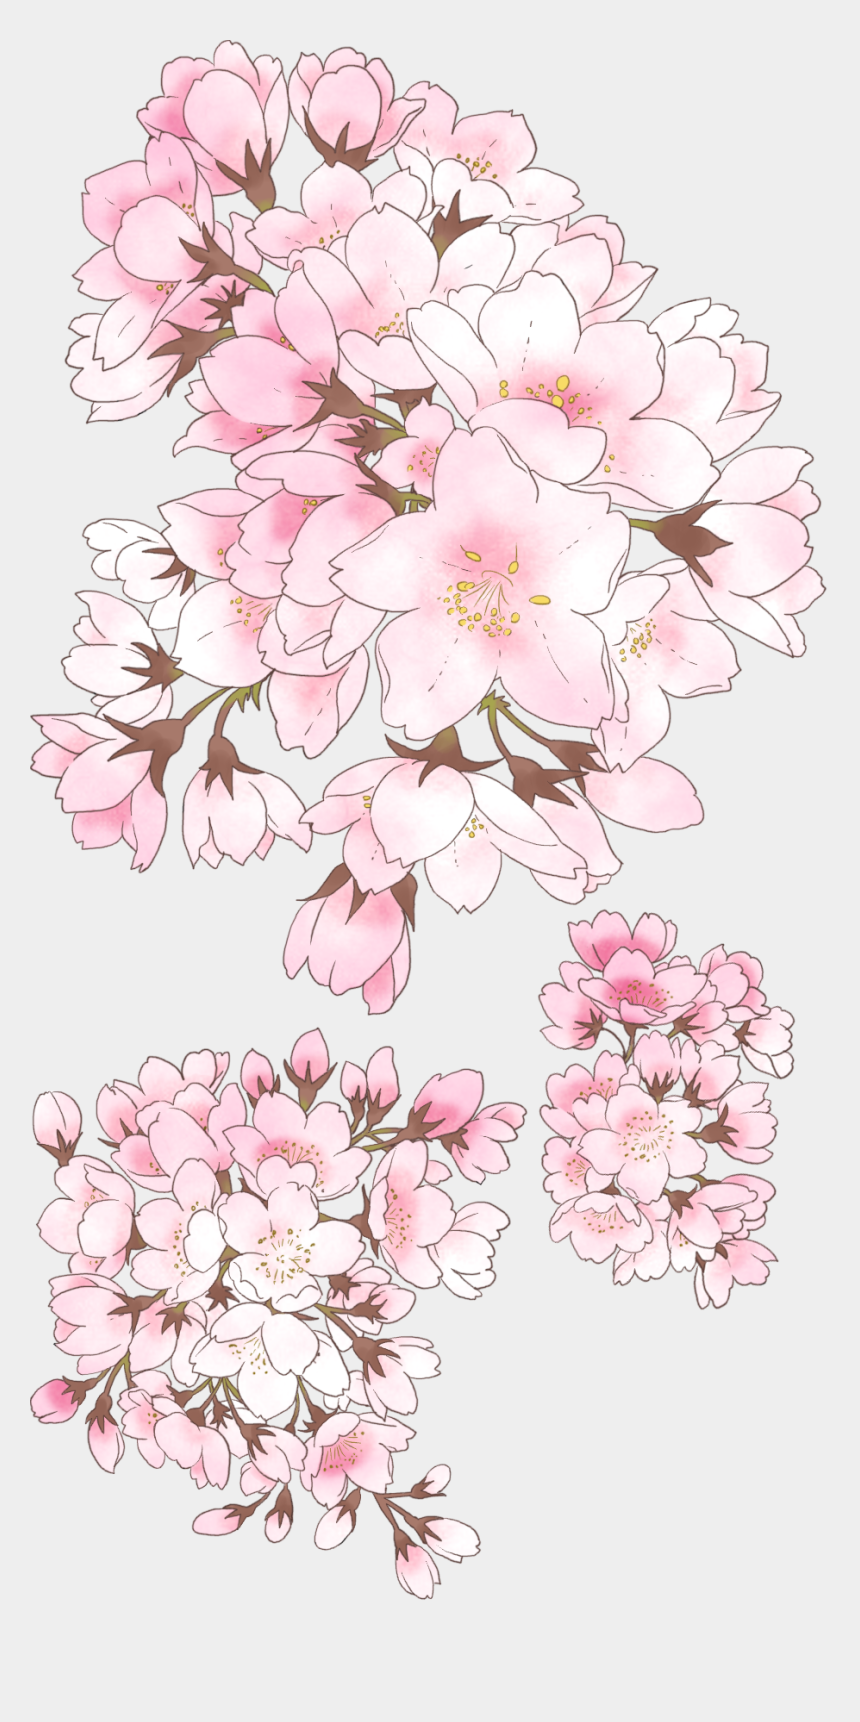 cherry blossom clipart, Cartoons - Watercolor Flowers Cherry Blossom Vector, Anime Cherry - Anime Cherry Blossom Drawing